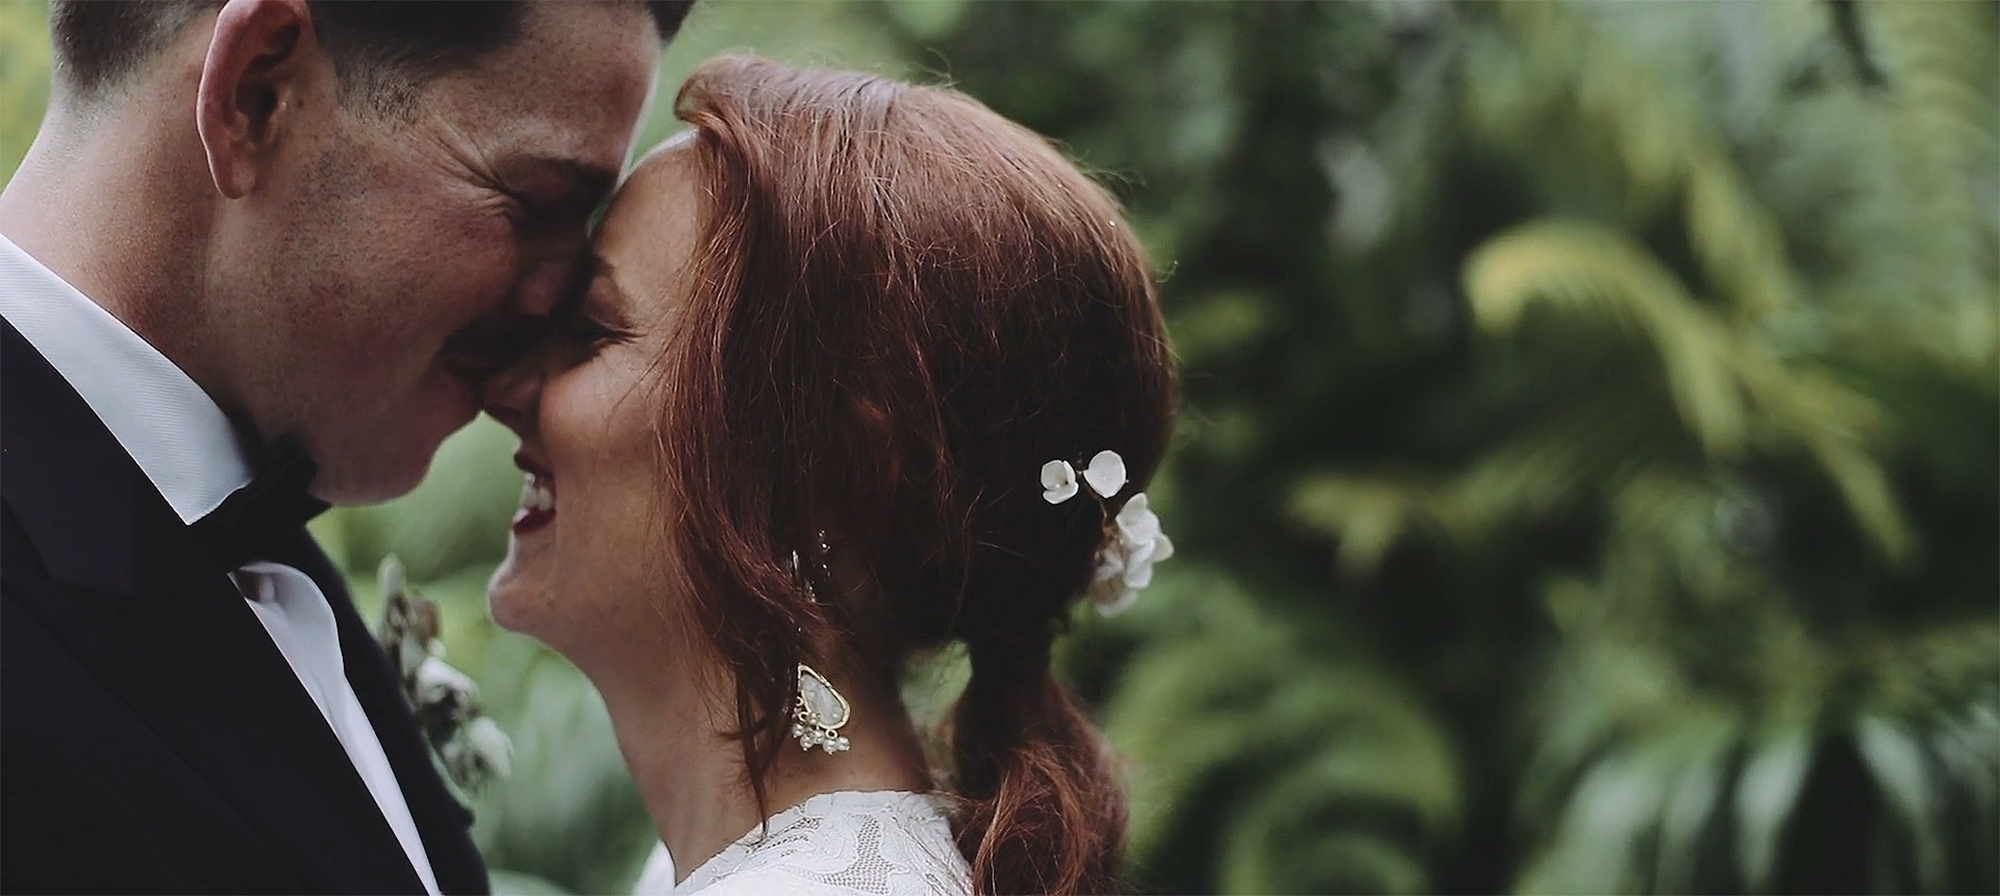 Annette-and-Dani-Films-Cait and Ollie3-wedding-video.jpg